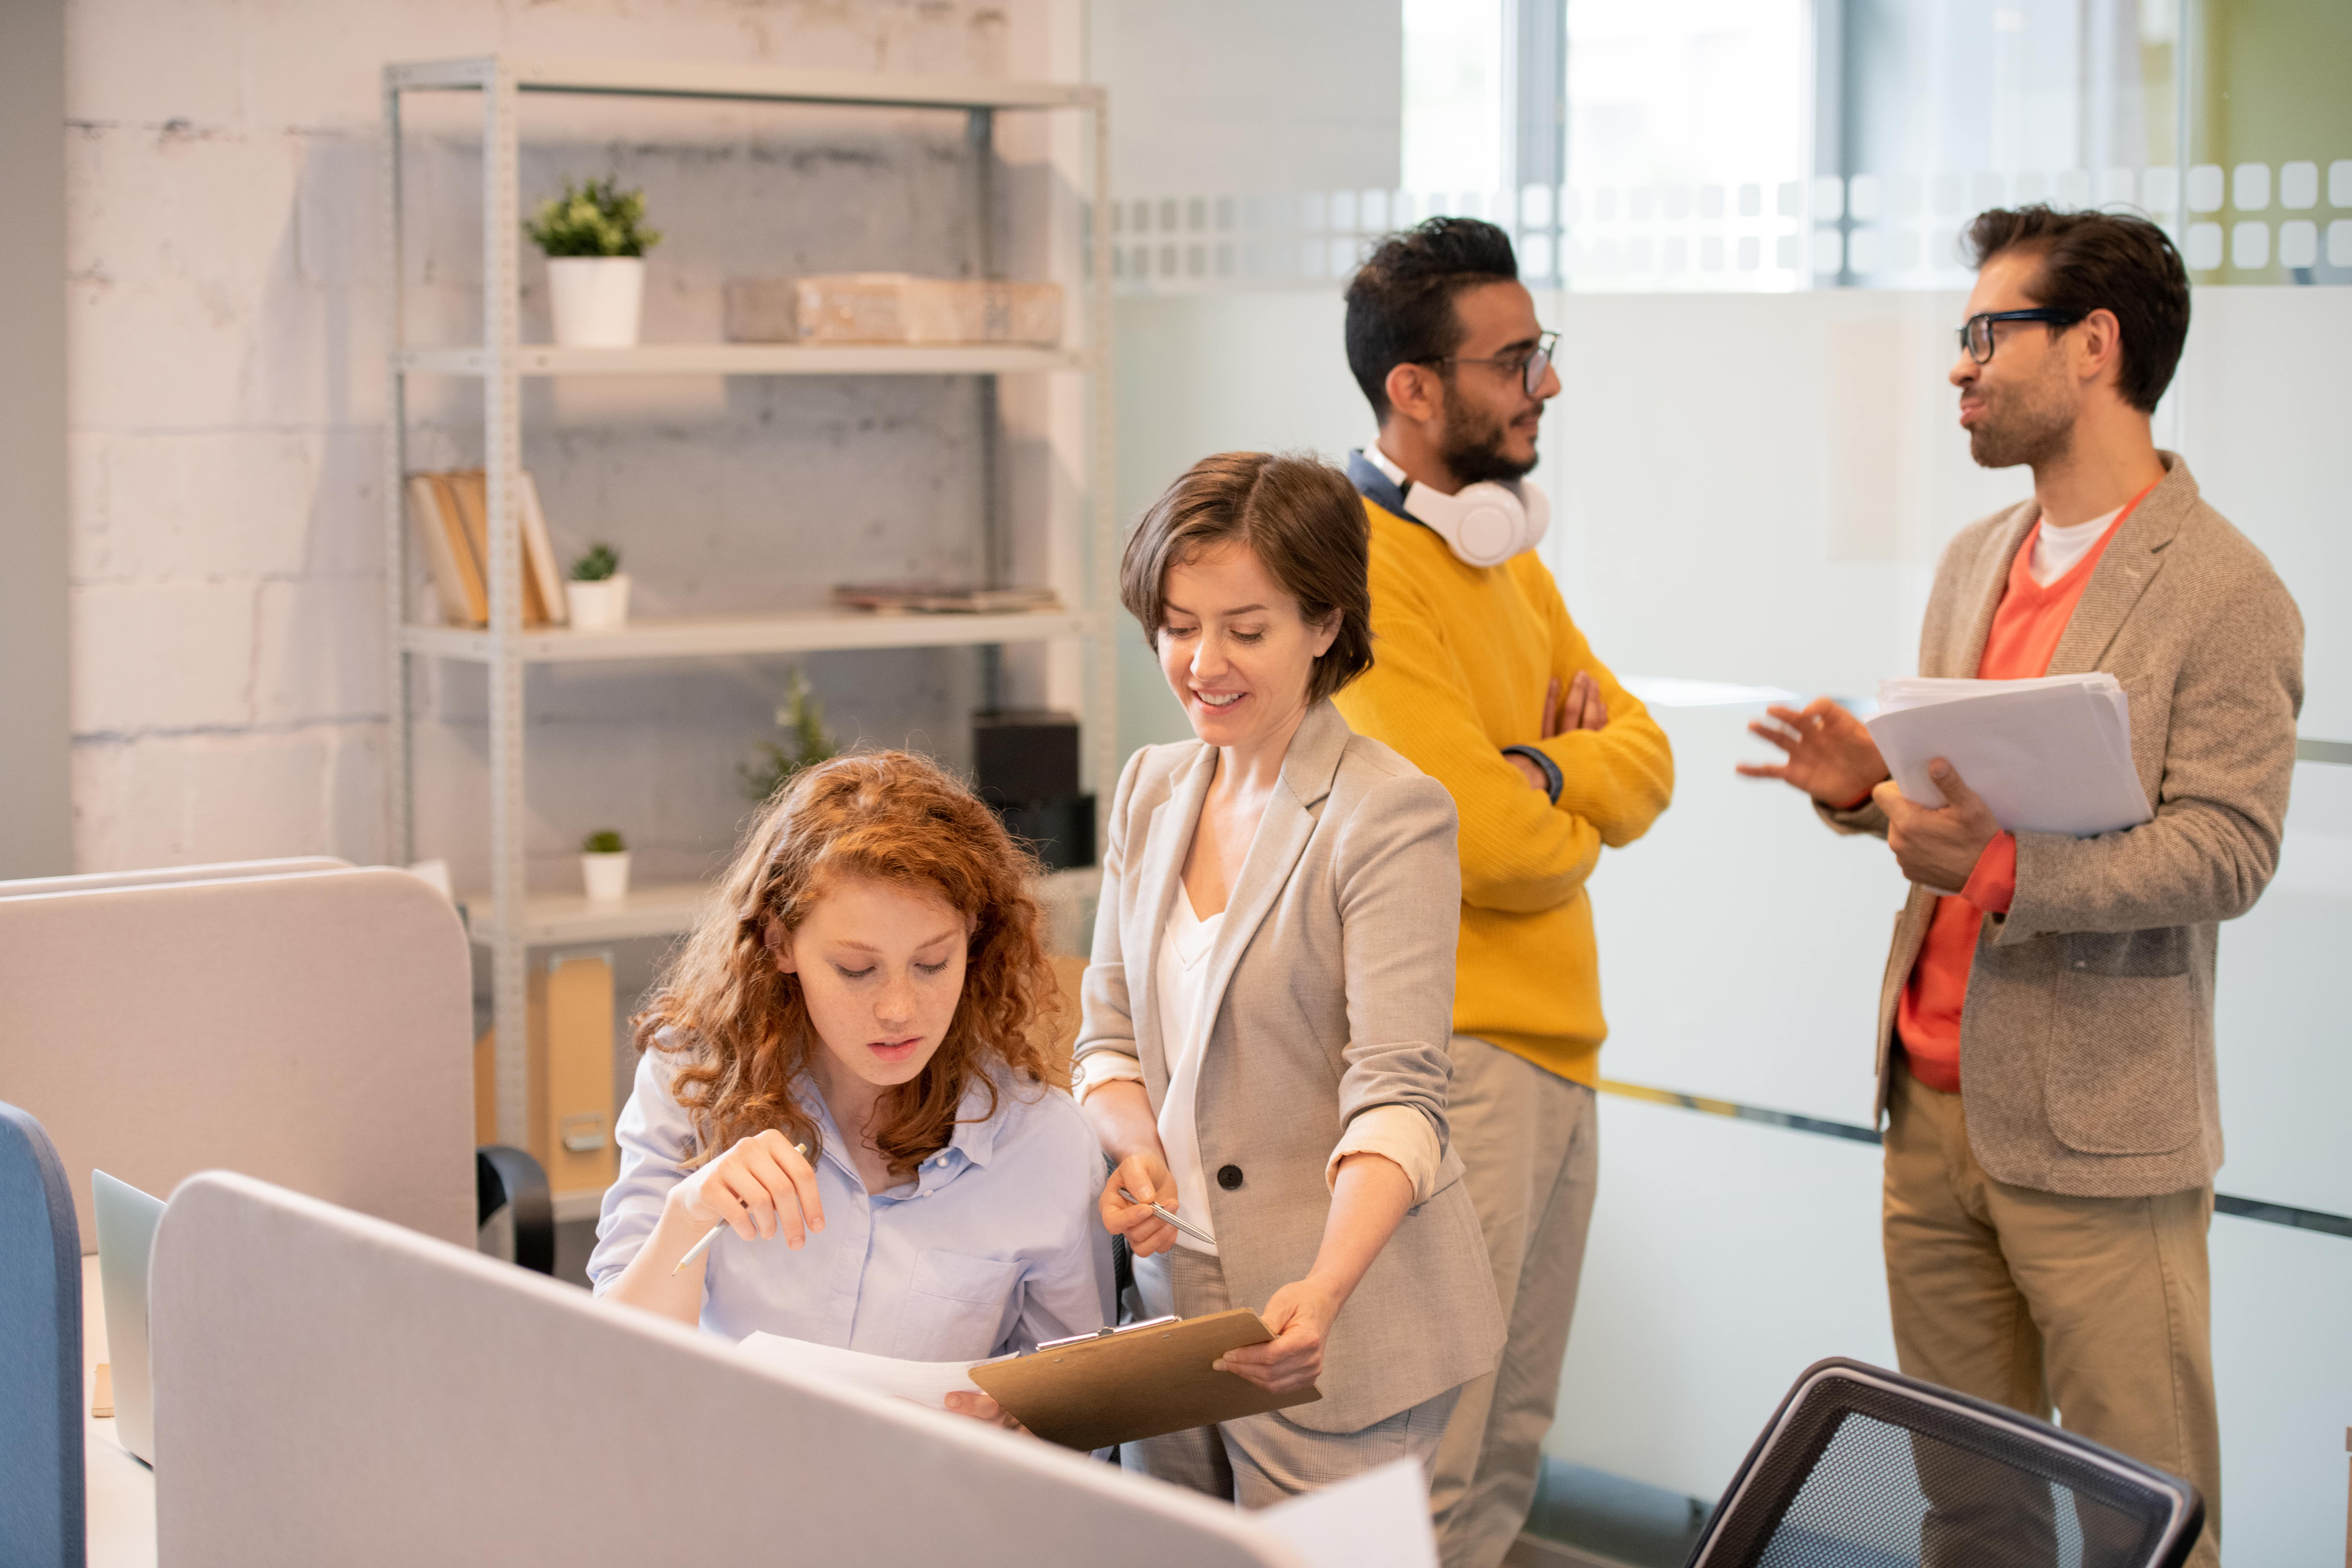 creative-employees-working-with-data-in-office-RWXGV4Z-min